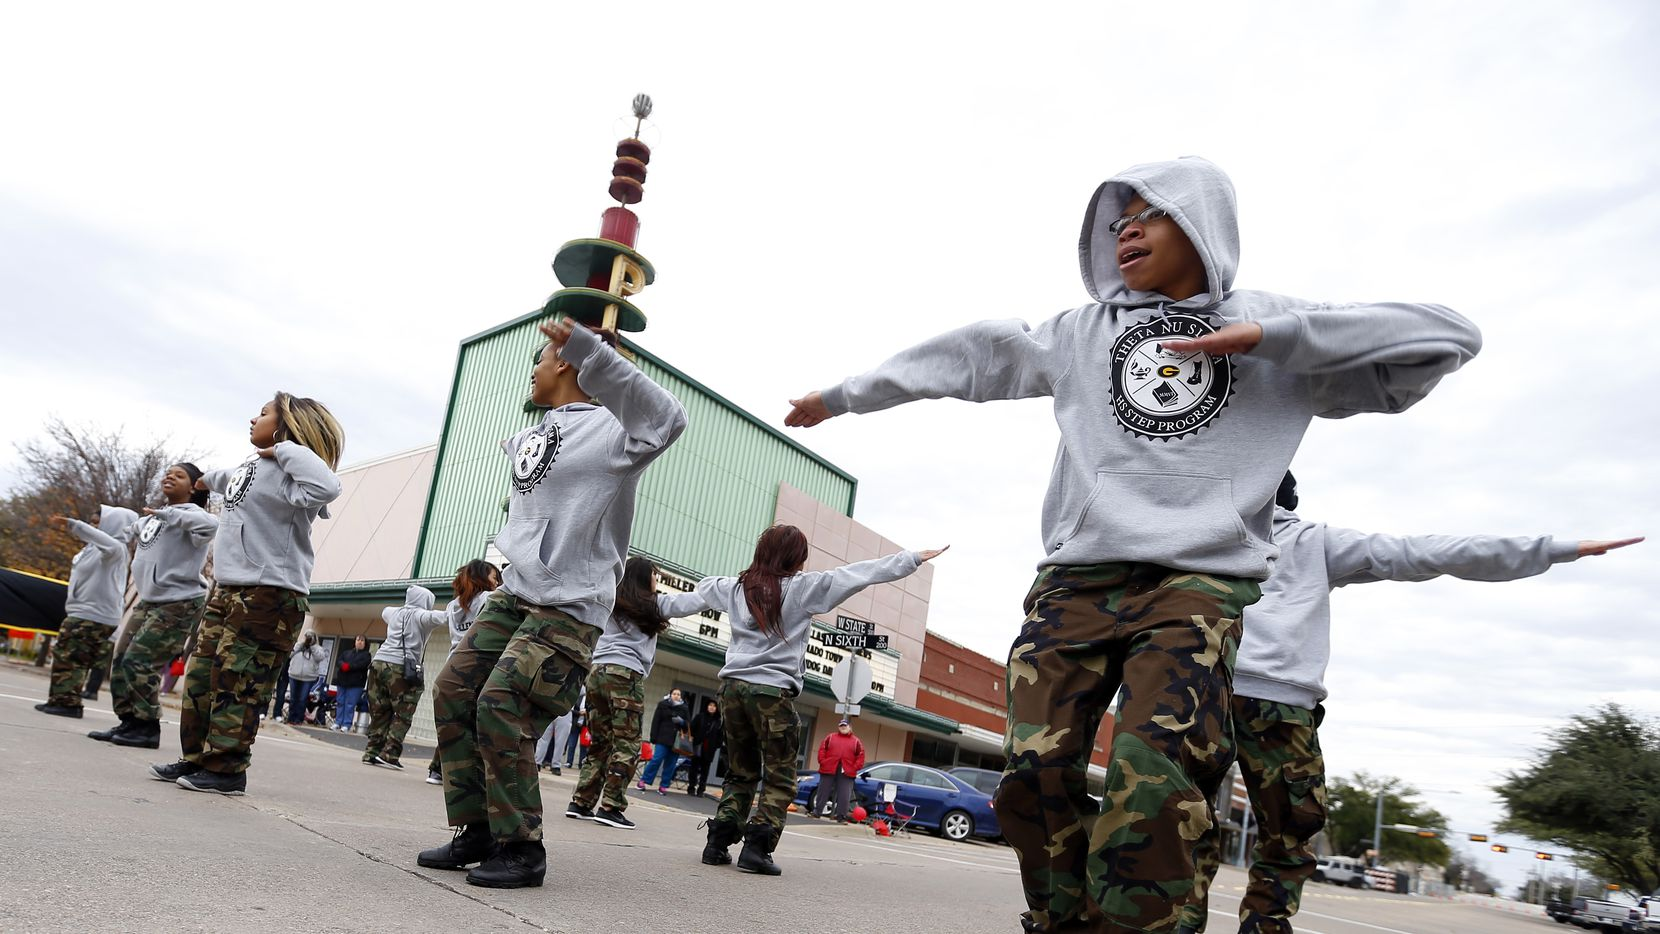 Members of the Garland High School step team, including Zavier Chatman (right) perform in the 27th Annual MLK Parade and March sponsored by the NAACP Garland Unit in downtown Garland on Saturday, January 16, 2016.